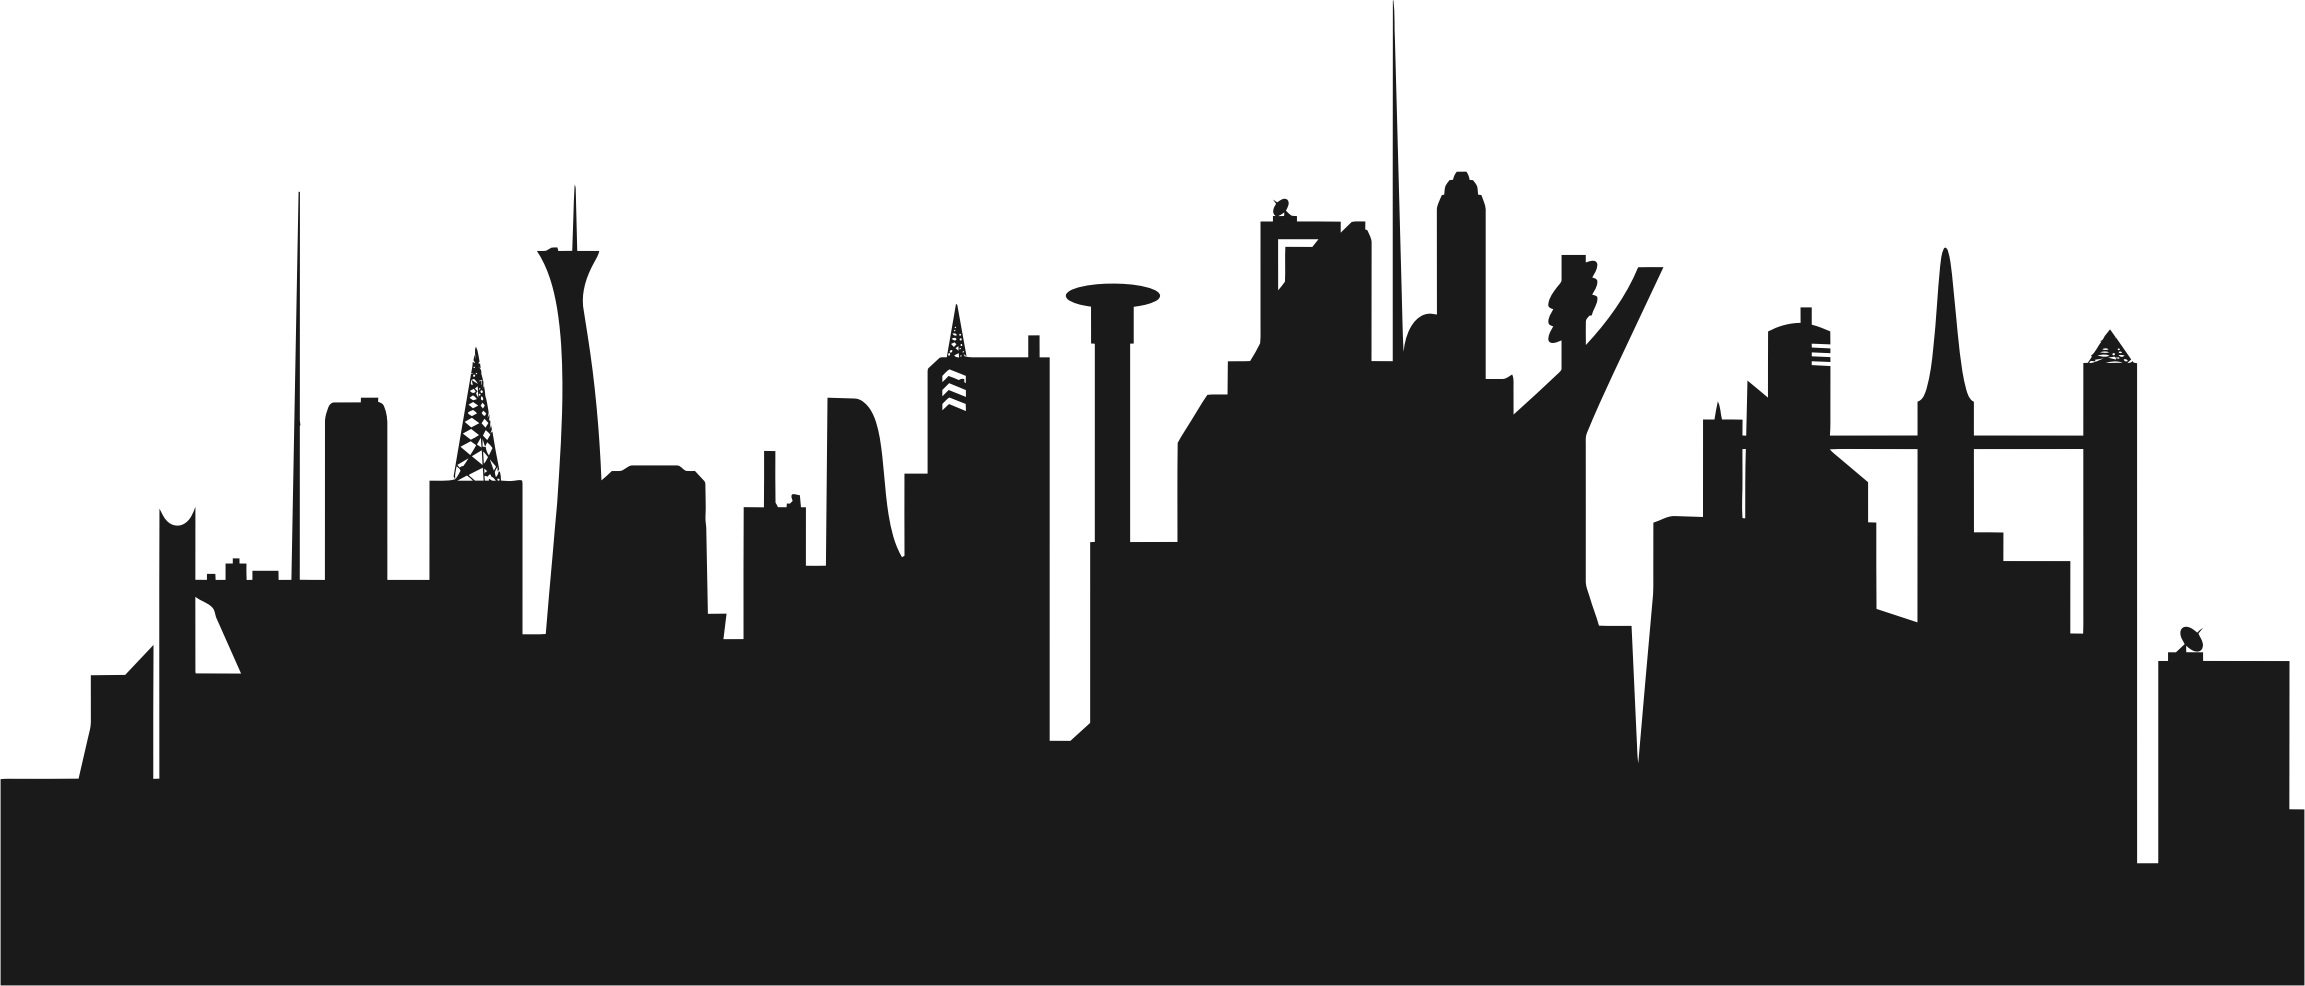 seattle skyline silhouette at getdrawings com free for personal rh getdrawings com seattle skyline vector free seattle skyline vector art